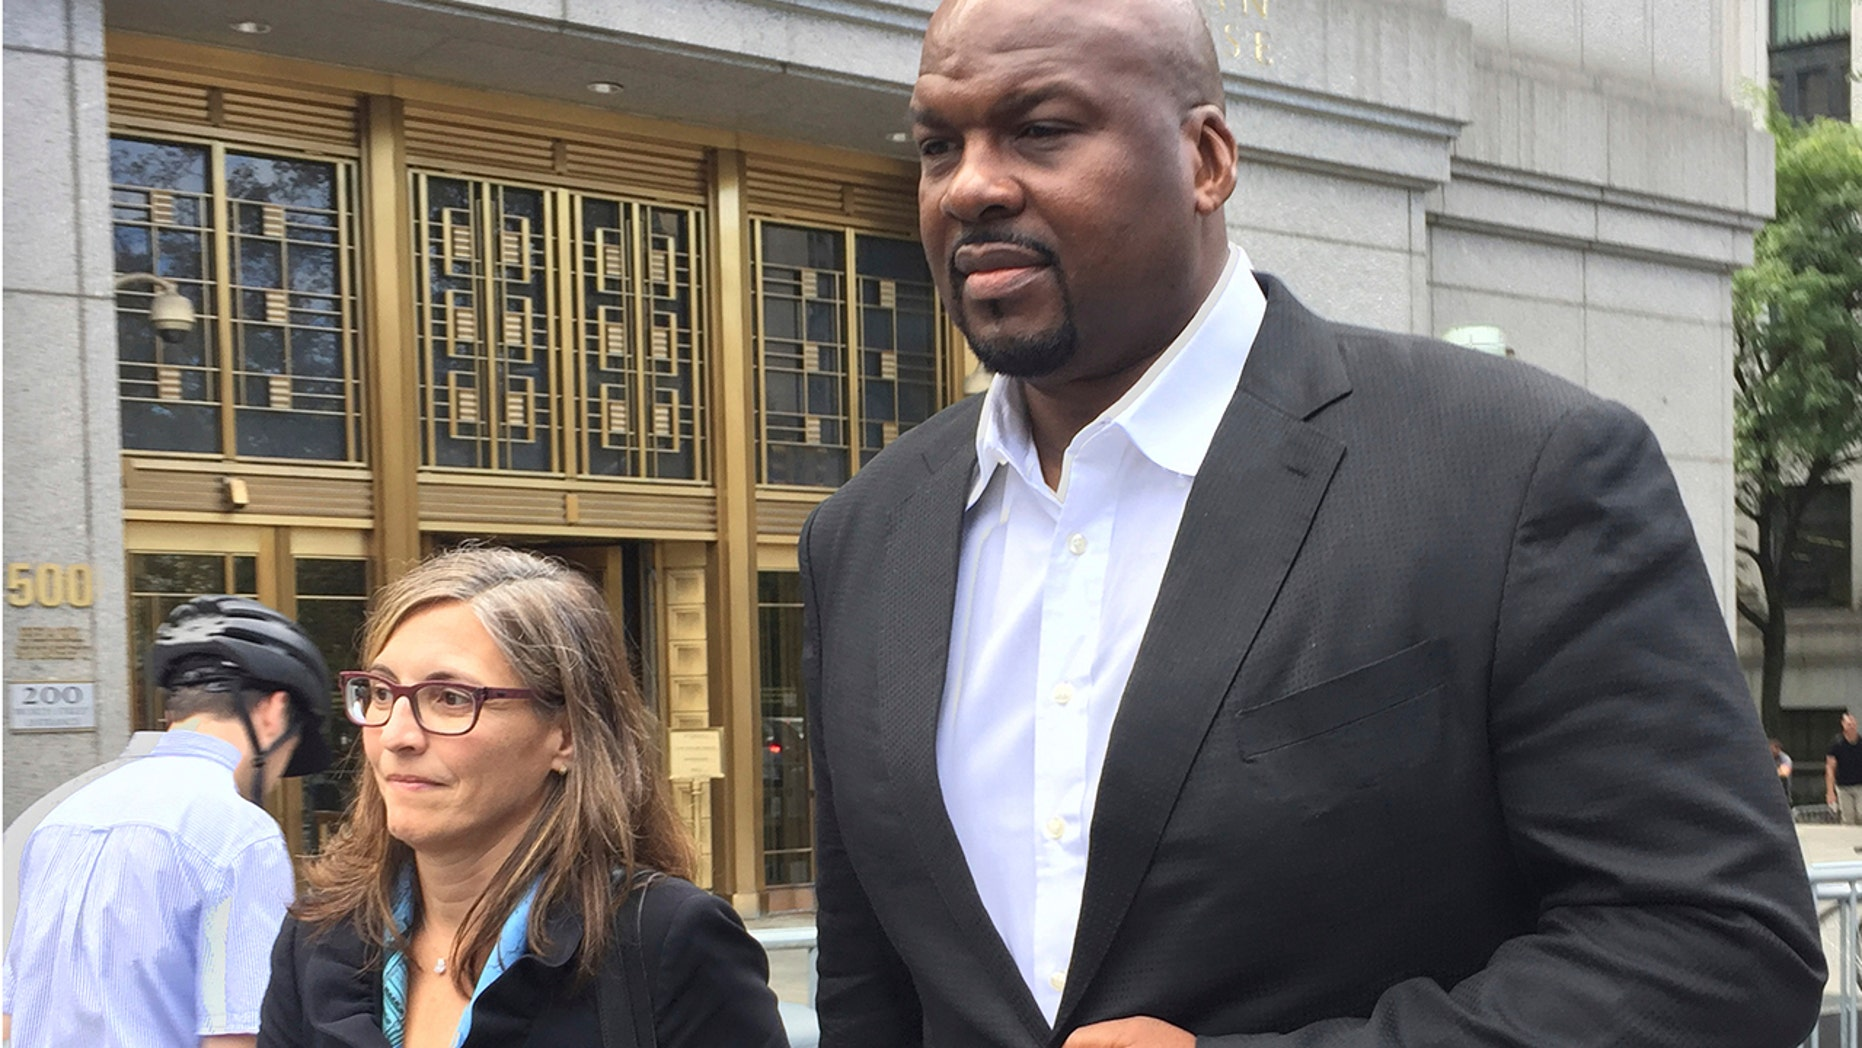 FILE - In this Oct. 10, 2017 file photo Chuck Person leaves Manhattan federal court in New York, after an initial appearance before a magistrate judge. Lawyers for the former Auburn University assistant basketball coach say the 13-year NBA veteran was broke and financially desperate when he joined a bribery conspiracy that cheated young athletes. They asked a judge in papers filed Tuesday, July 2, 2019 in Manhattan federal court to spare him from prison in the scandal that touched some of the biggest schools in college basketball. (AP Photo/Larry Neumeister, File)